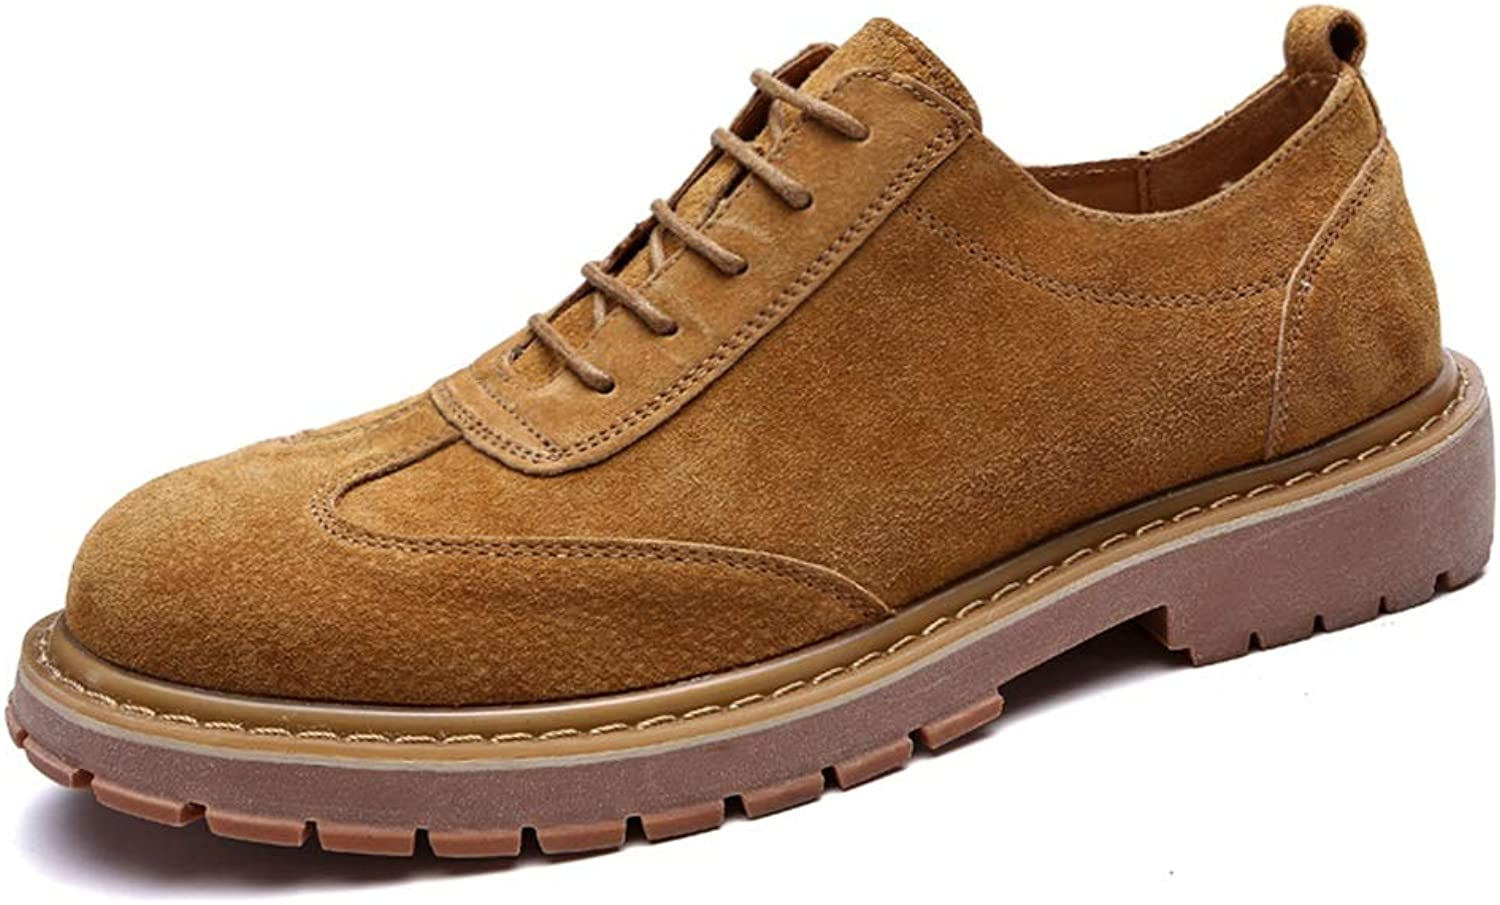 XIANGBAO-Personality Men's Fashion Oxford Casual Comfortable Stave Toe Outsole Retro Wipe Colour Formal shoes